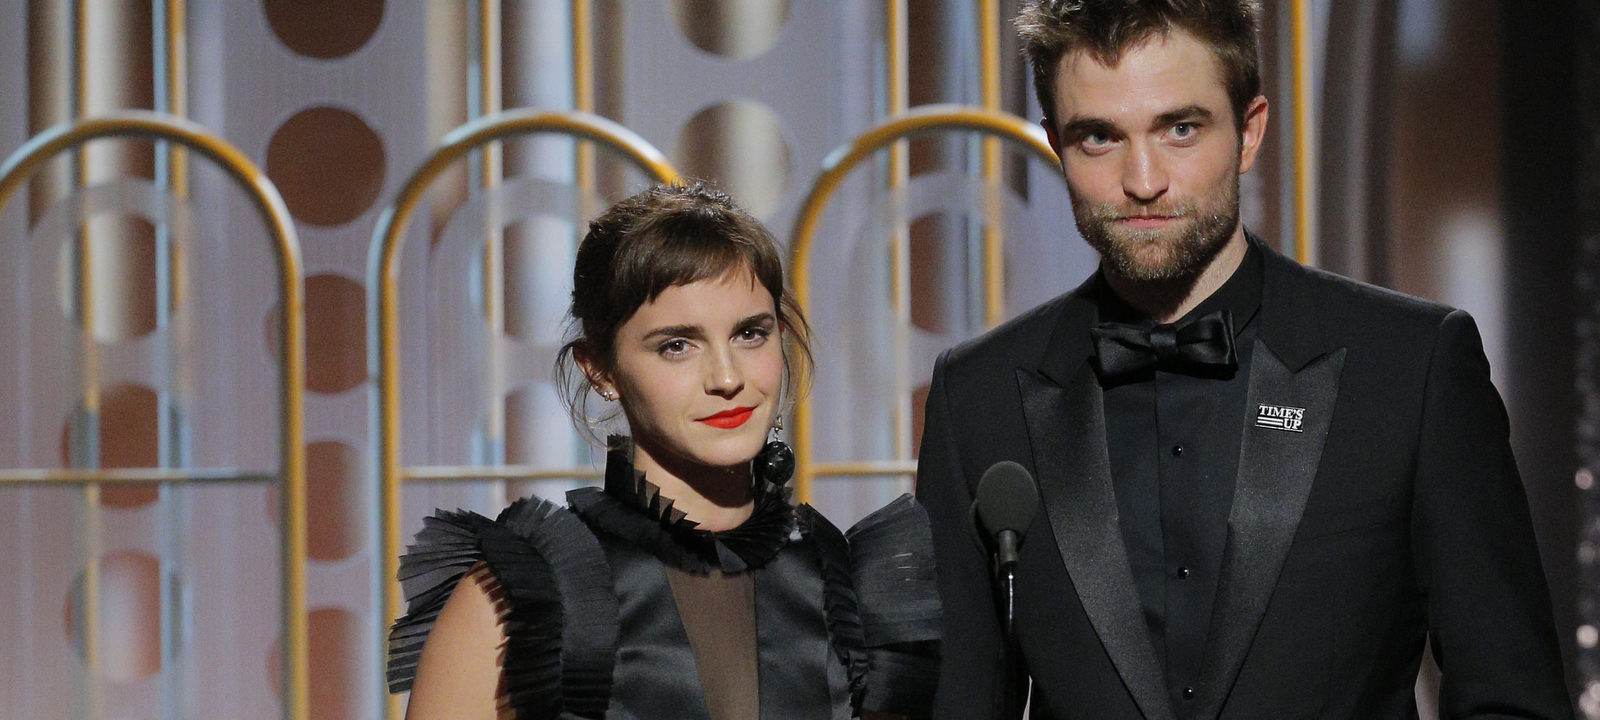 Emma Watson and Robert Pattinson speaks onstage during the 75th Annual Golden Globe Awards at The Beverly Hilton Hotel on January 7, 2018 in Beverly Hills, California.